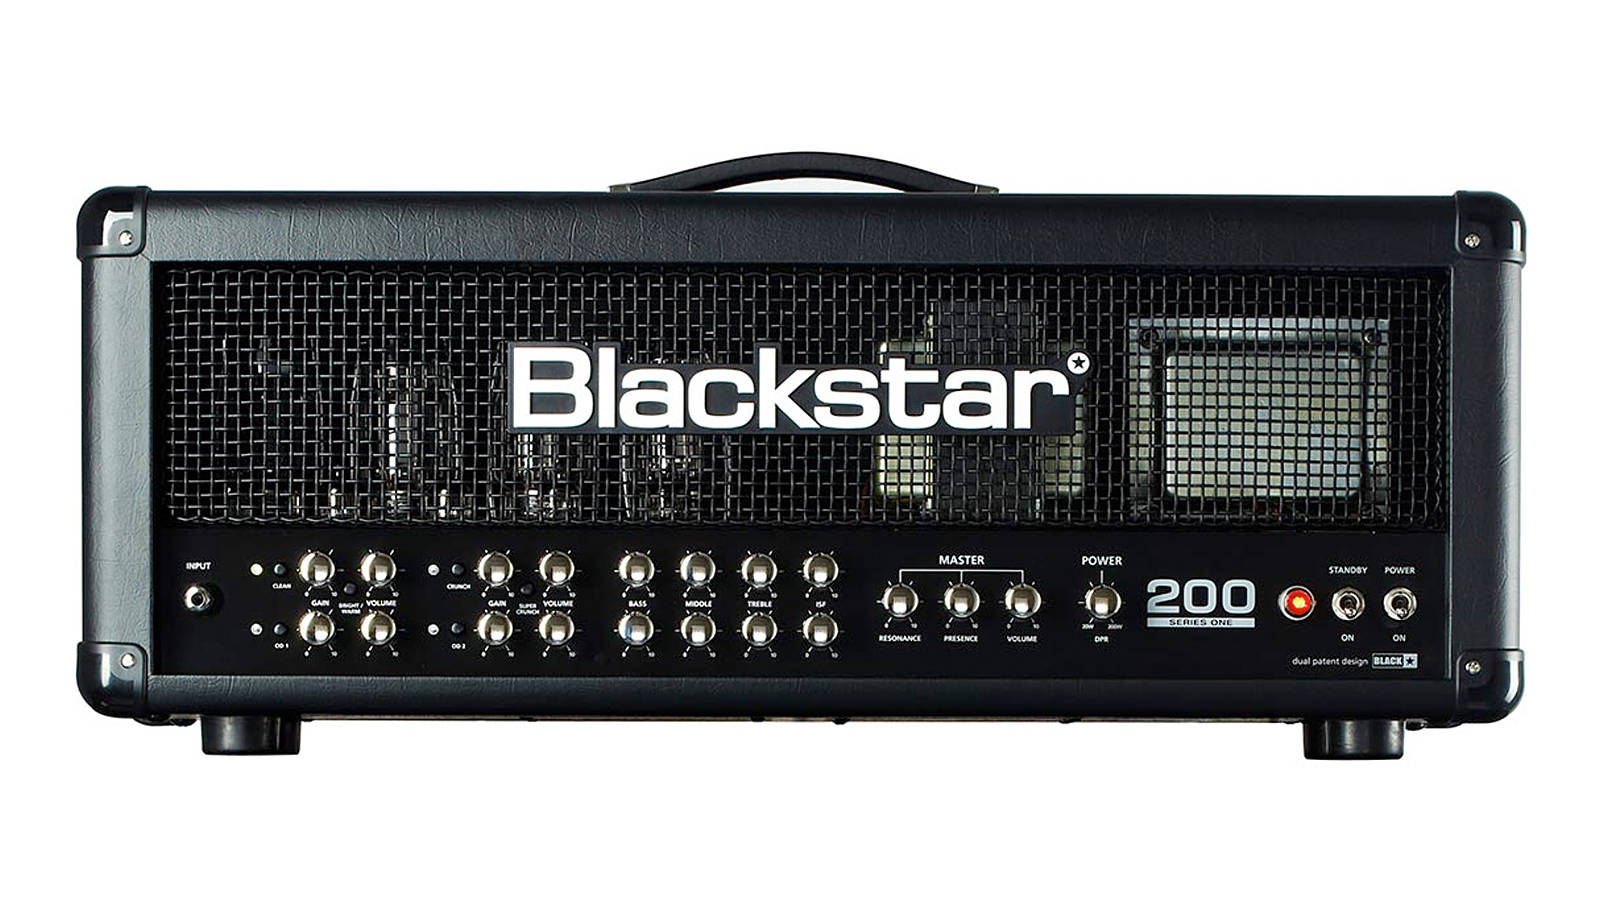 Blackstar Series One 200 Head inkl. Footswitch